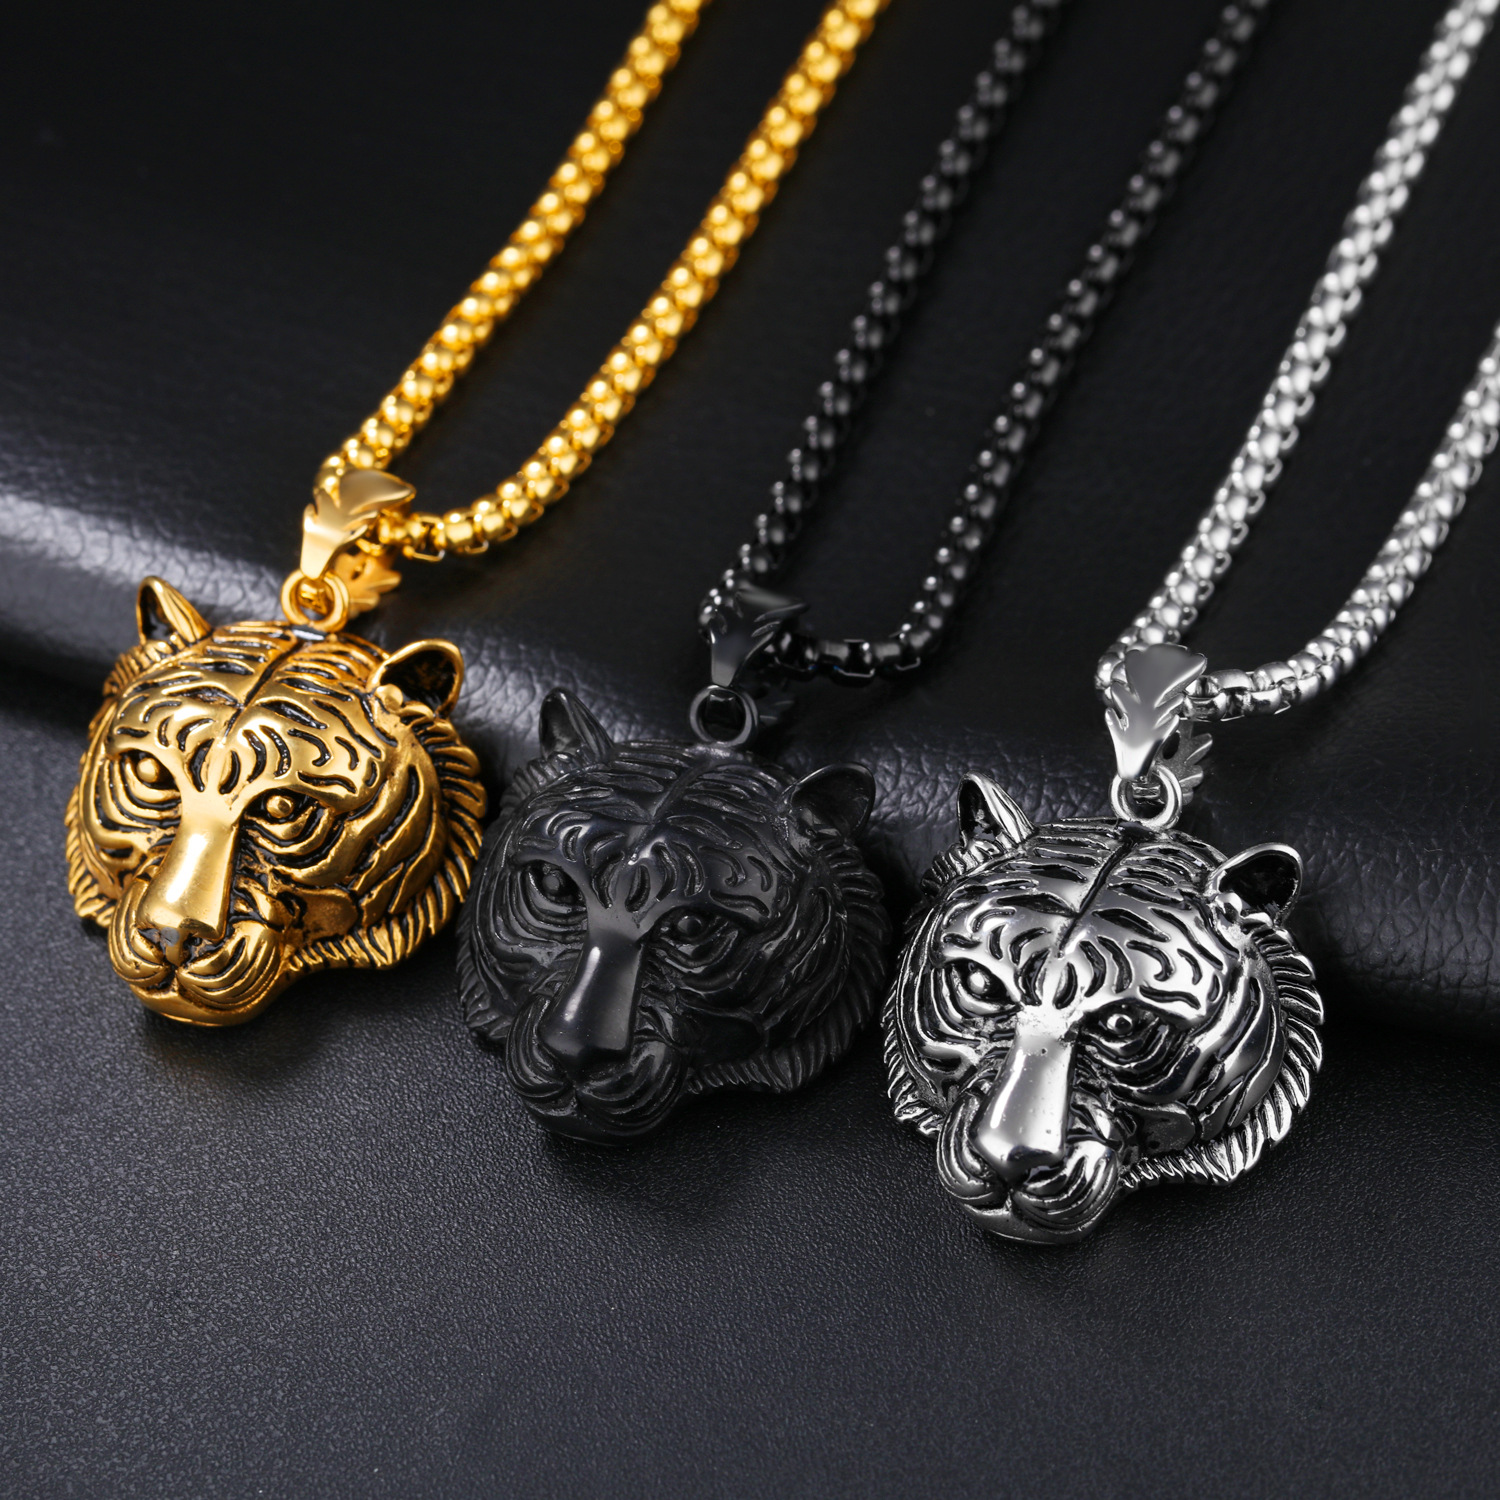 lockets silver men s pin necklaces gold sterling chains neck mens male